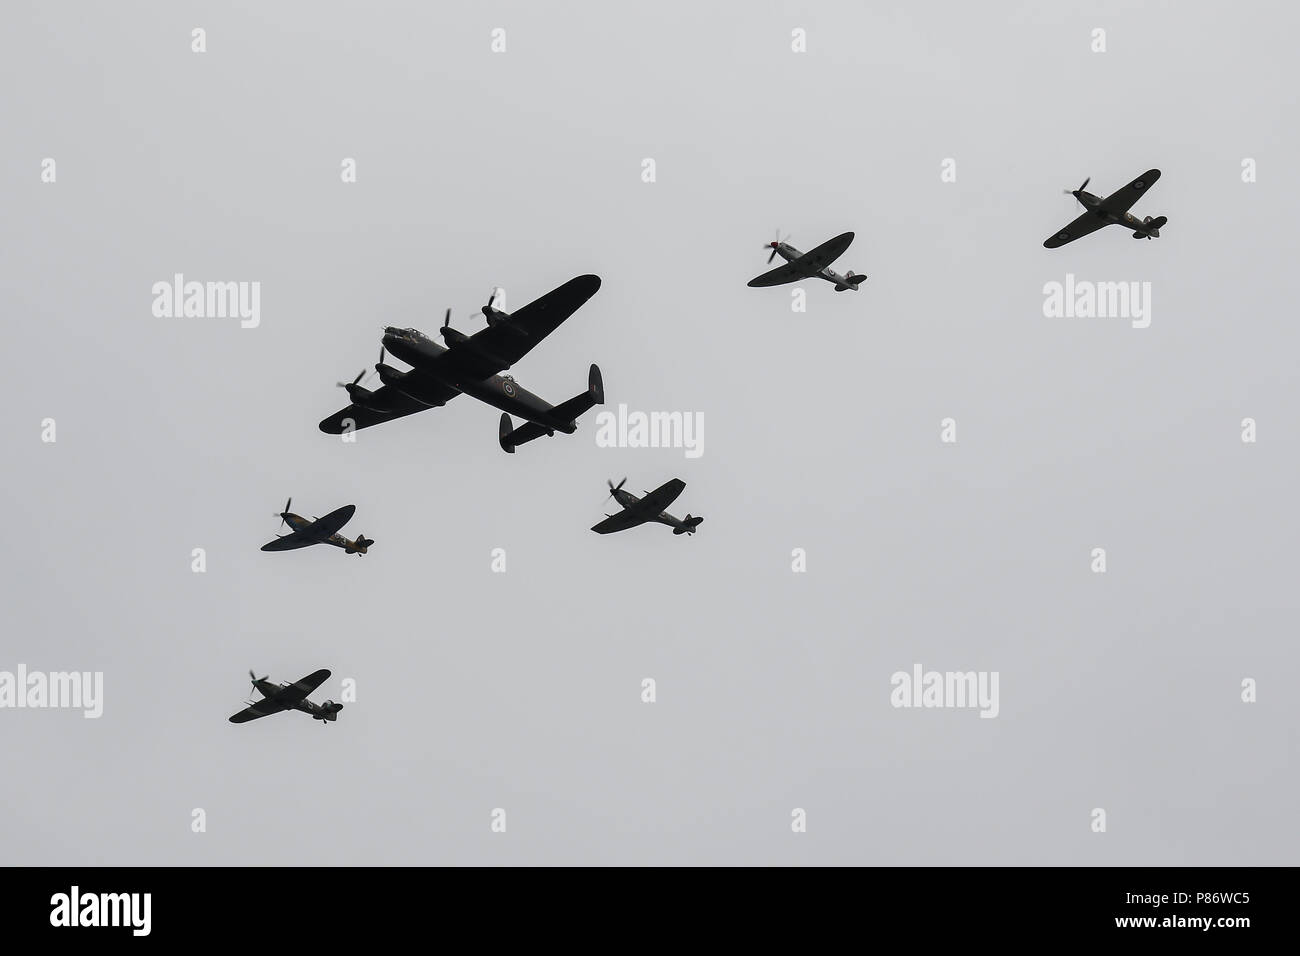 London, UK. 10th July 2018. The Royal Air Force's Battle of Britain Memorial Flight pass over London, with the Avro Lancaster, Two Hawker Hurricanes and three Supermarine Spitfires during the RAF100 Flypast Credit: James Hancock/Alamy Live News - Stock Image